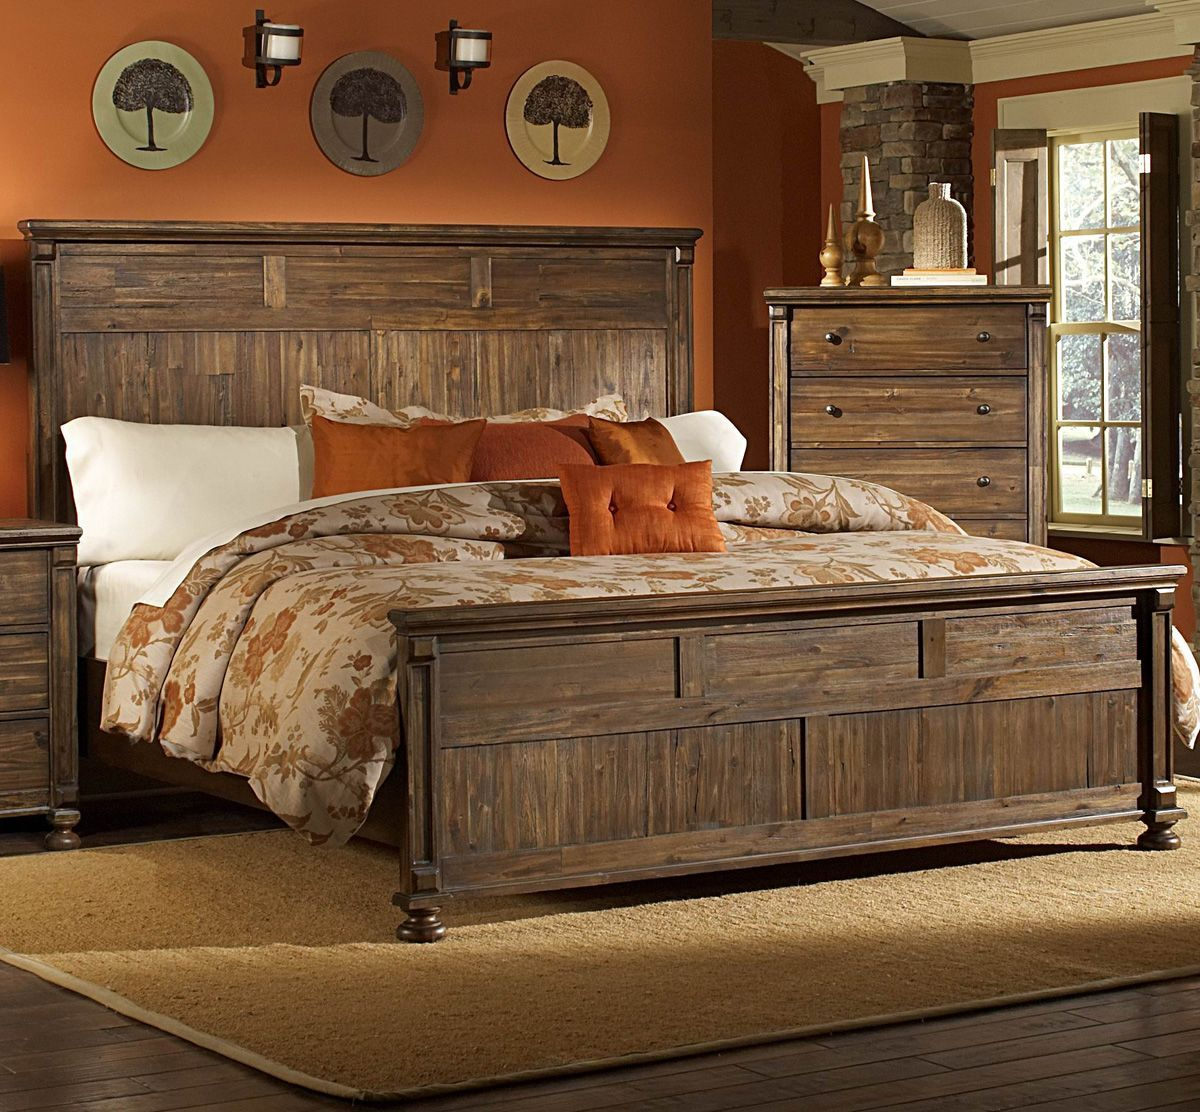 Rustic Furniture Set Master Bedroom Yes Please Our